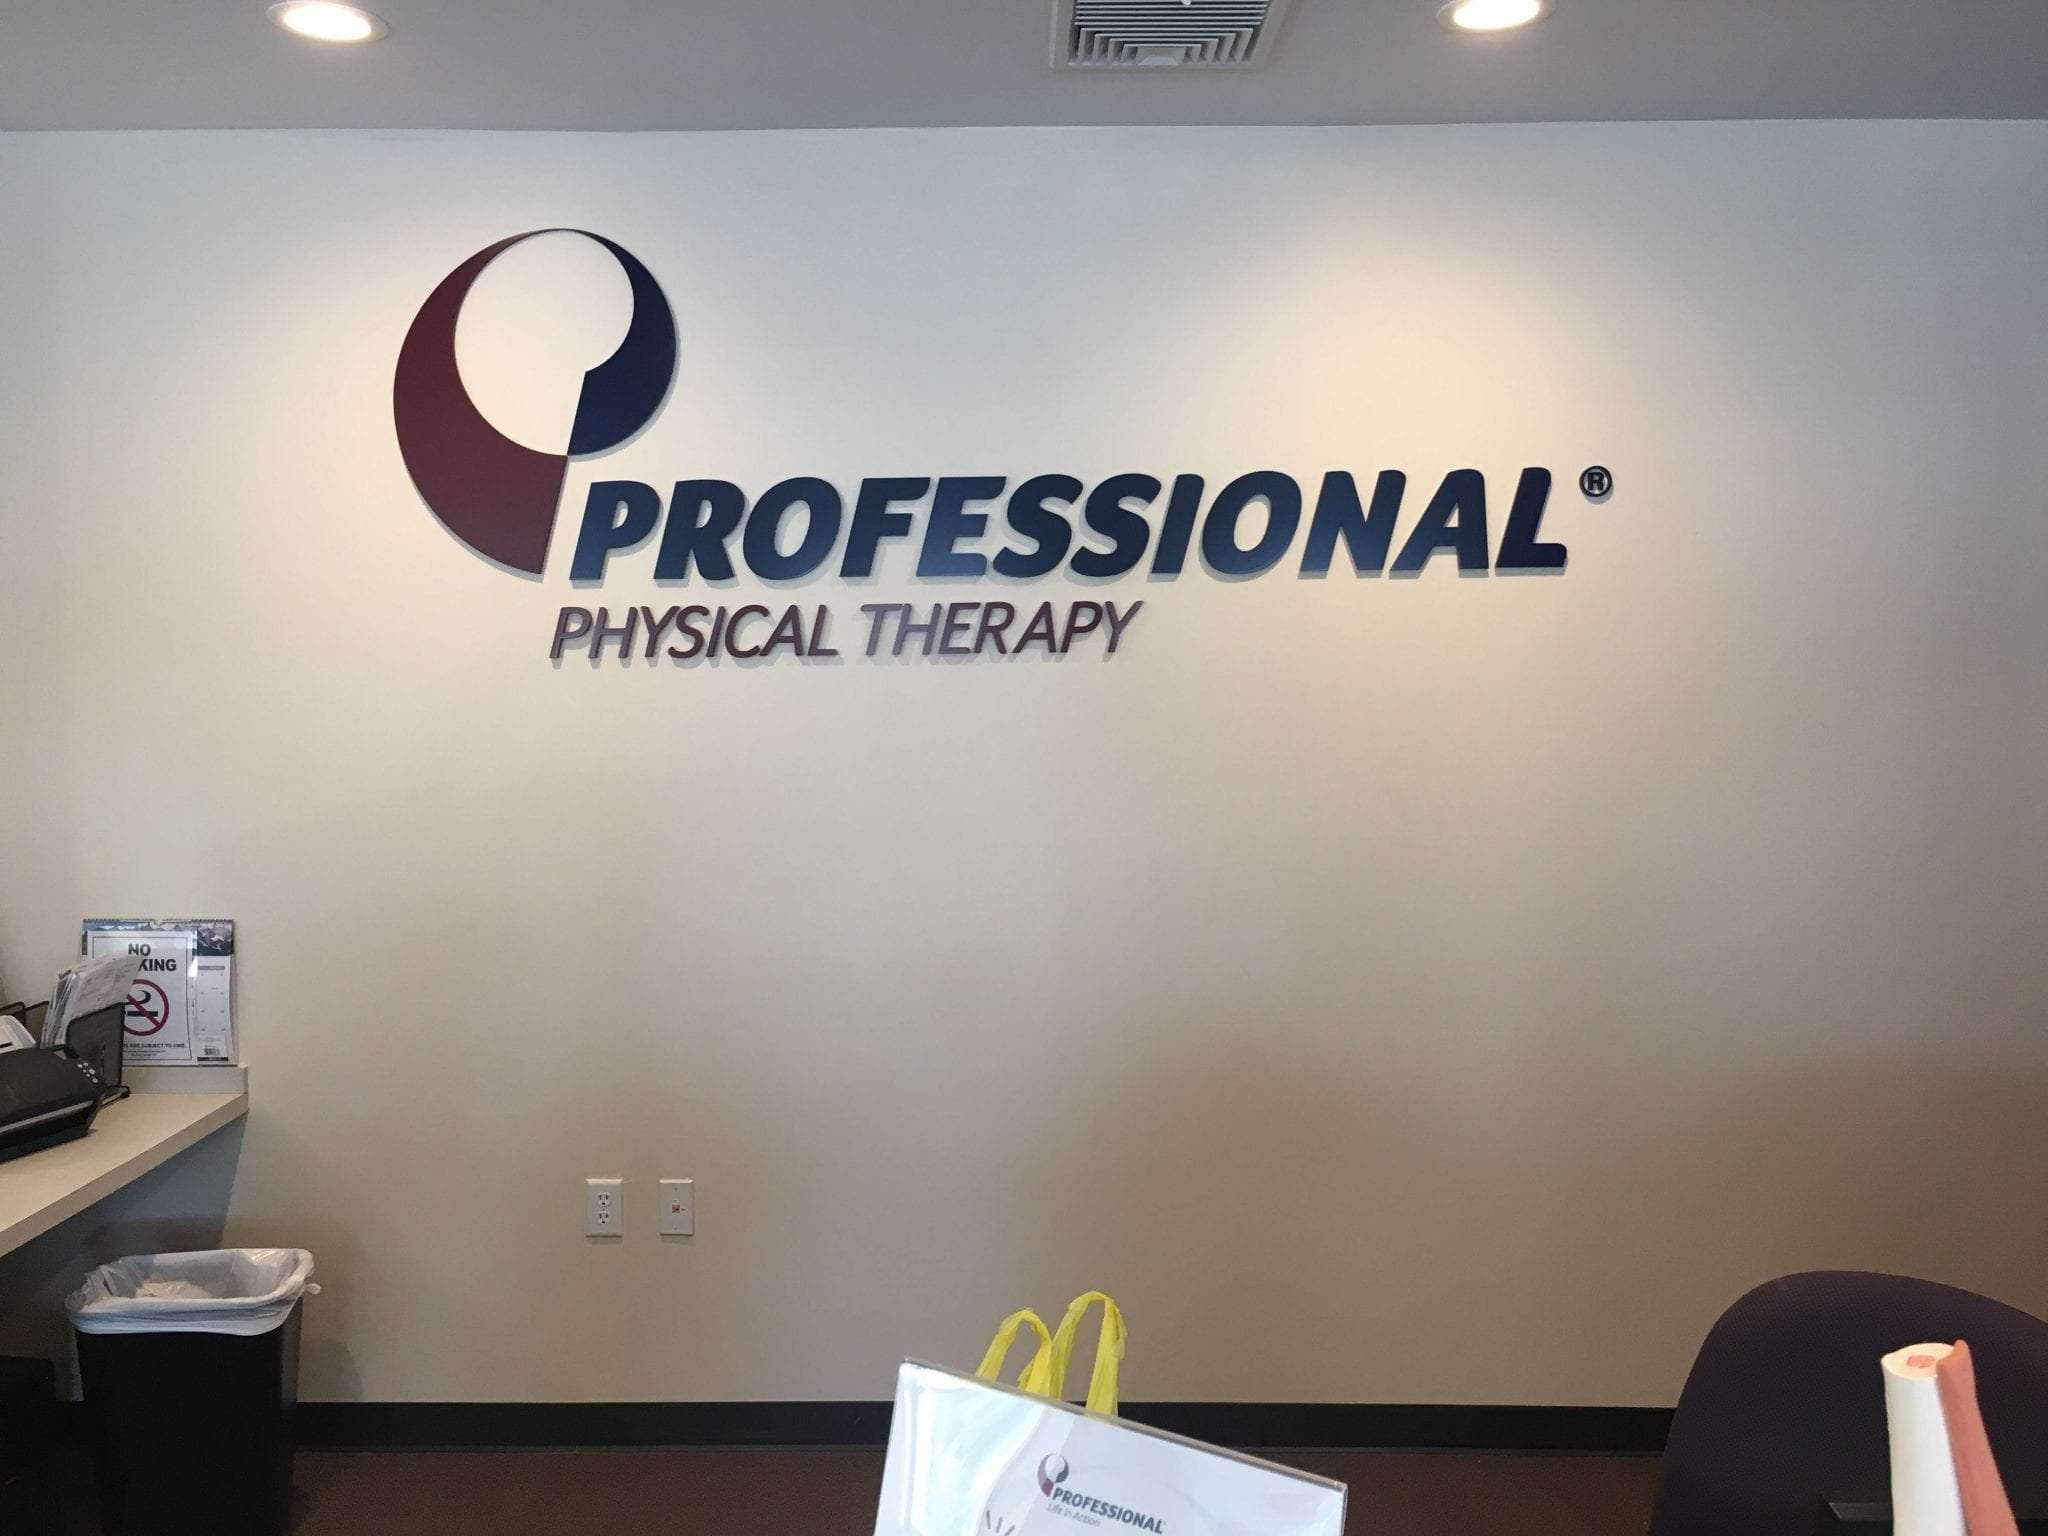 Here is an image of the sign for our physical therapy clinic on our wall. This is at our facility in Montville, New Jersey.